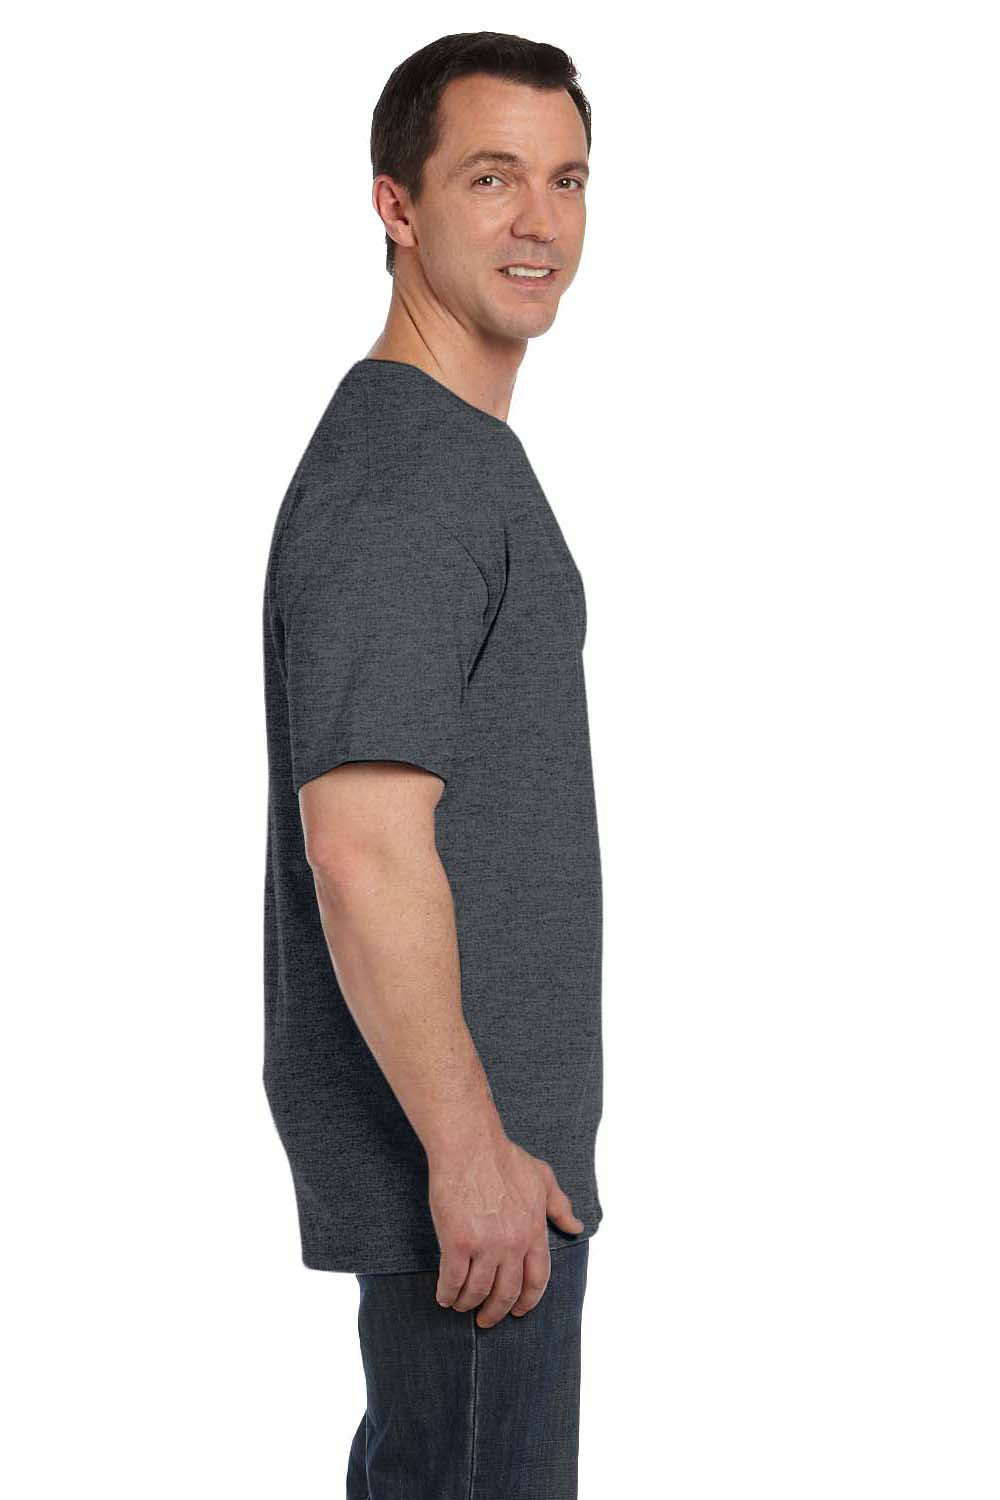 Hanes 5190P Mens Beefy-T Short Sleeve Crewneck T-Shirt w/ Pocket Heather Charcoal Grey Side